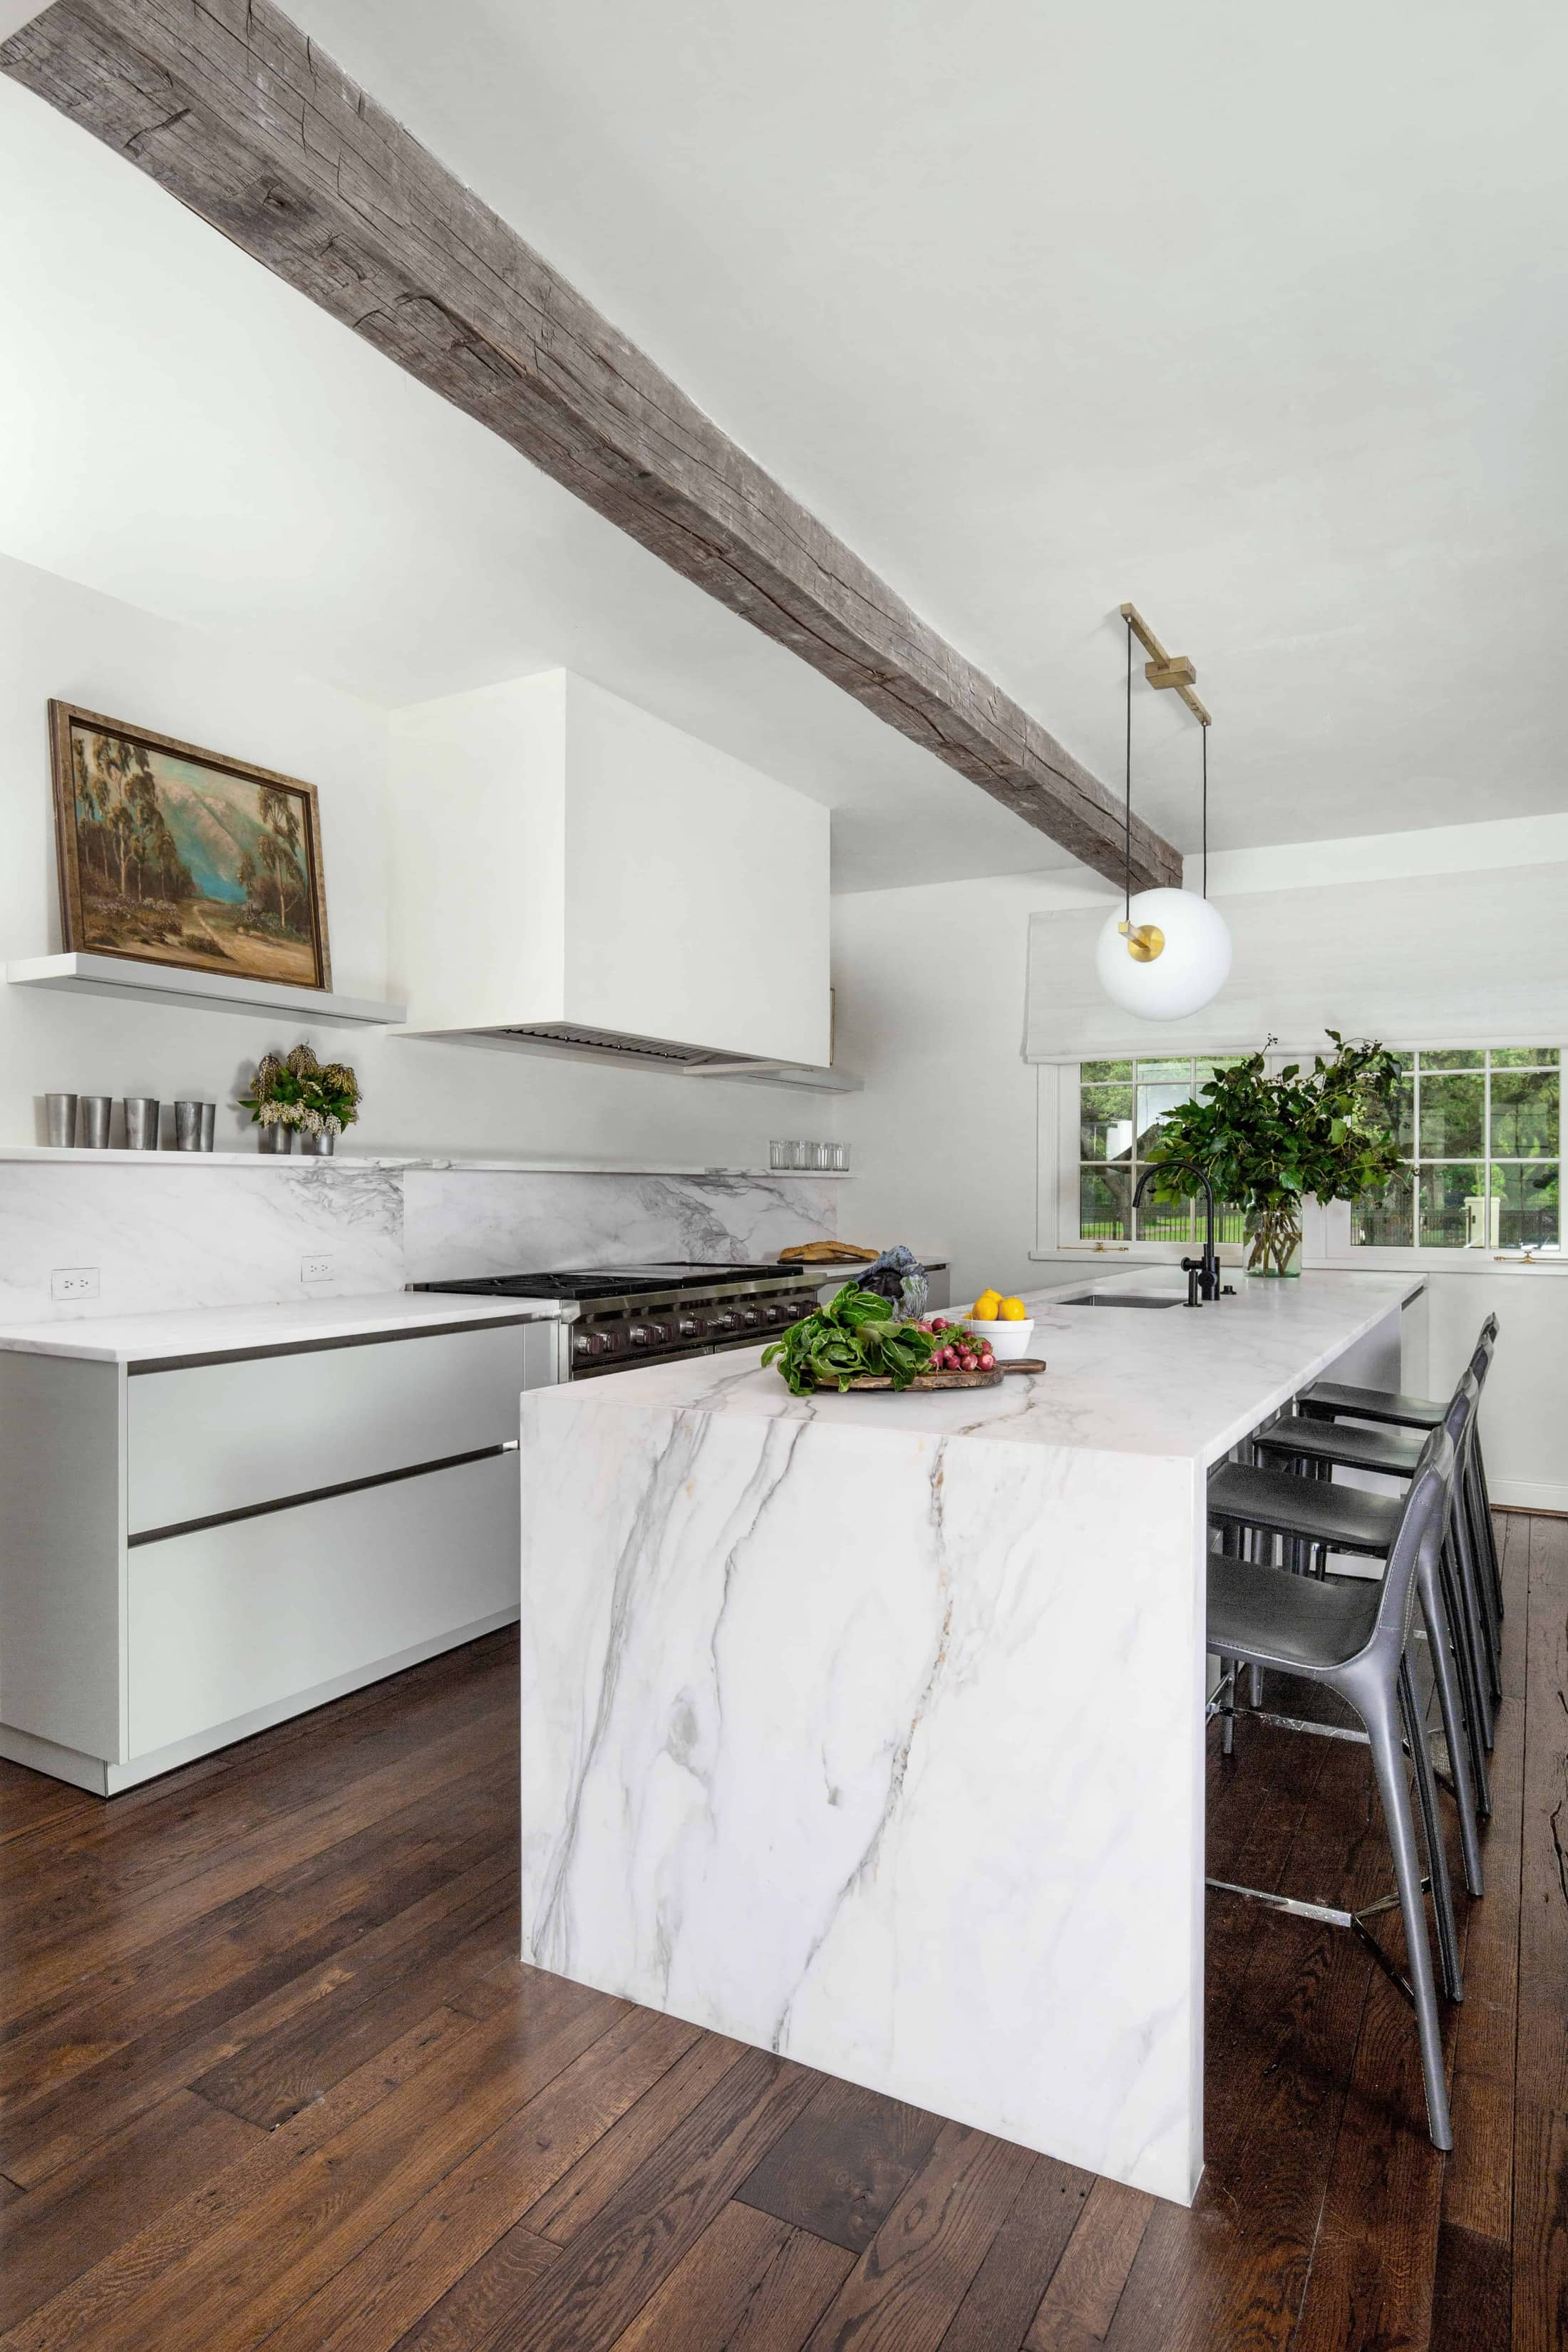 casual dining in eggersmann german kitchen featured in remodel of a home in the Houston Museum district